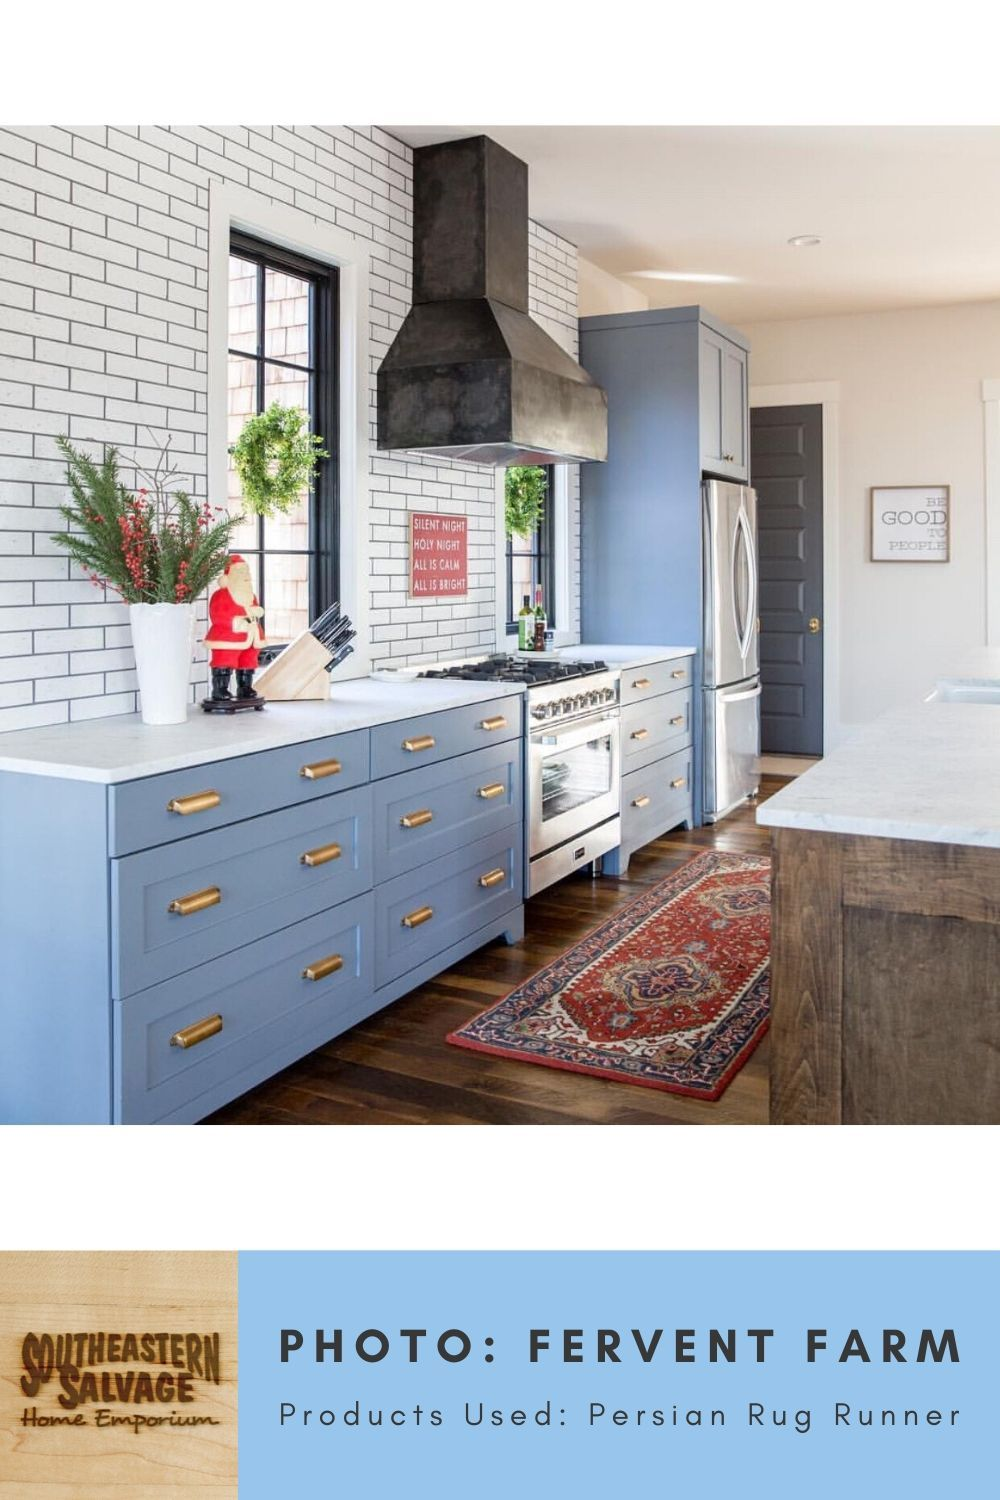 Kitchen By Fervent Farm Persian Rug Runner Southeastern Salvage Home Emporium In 2020 Kitchen Blue Cabinets Home